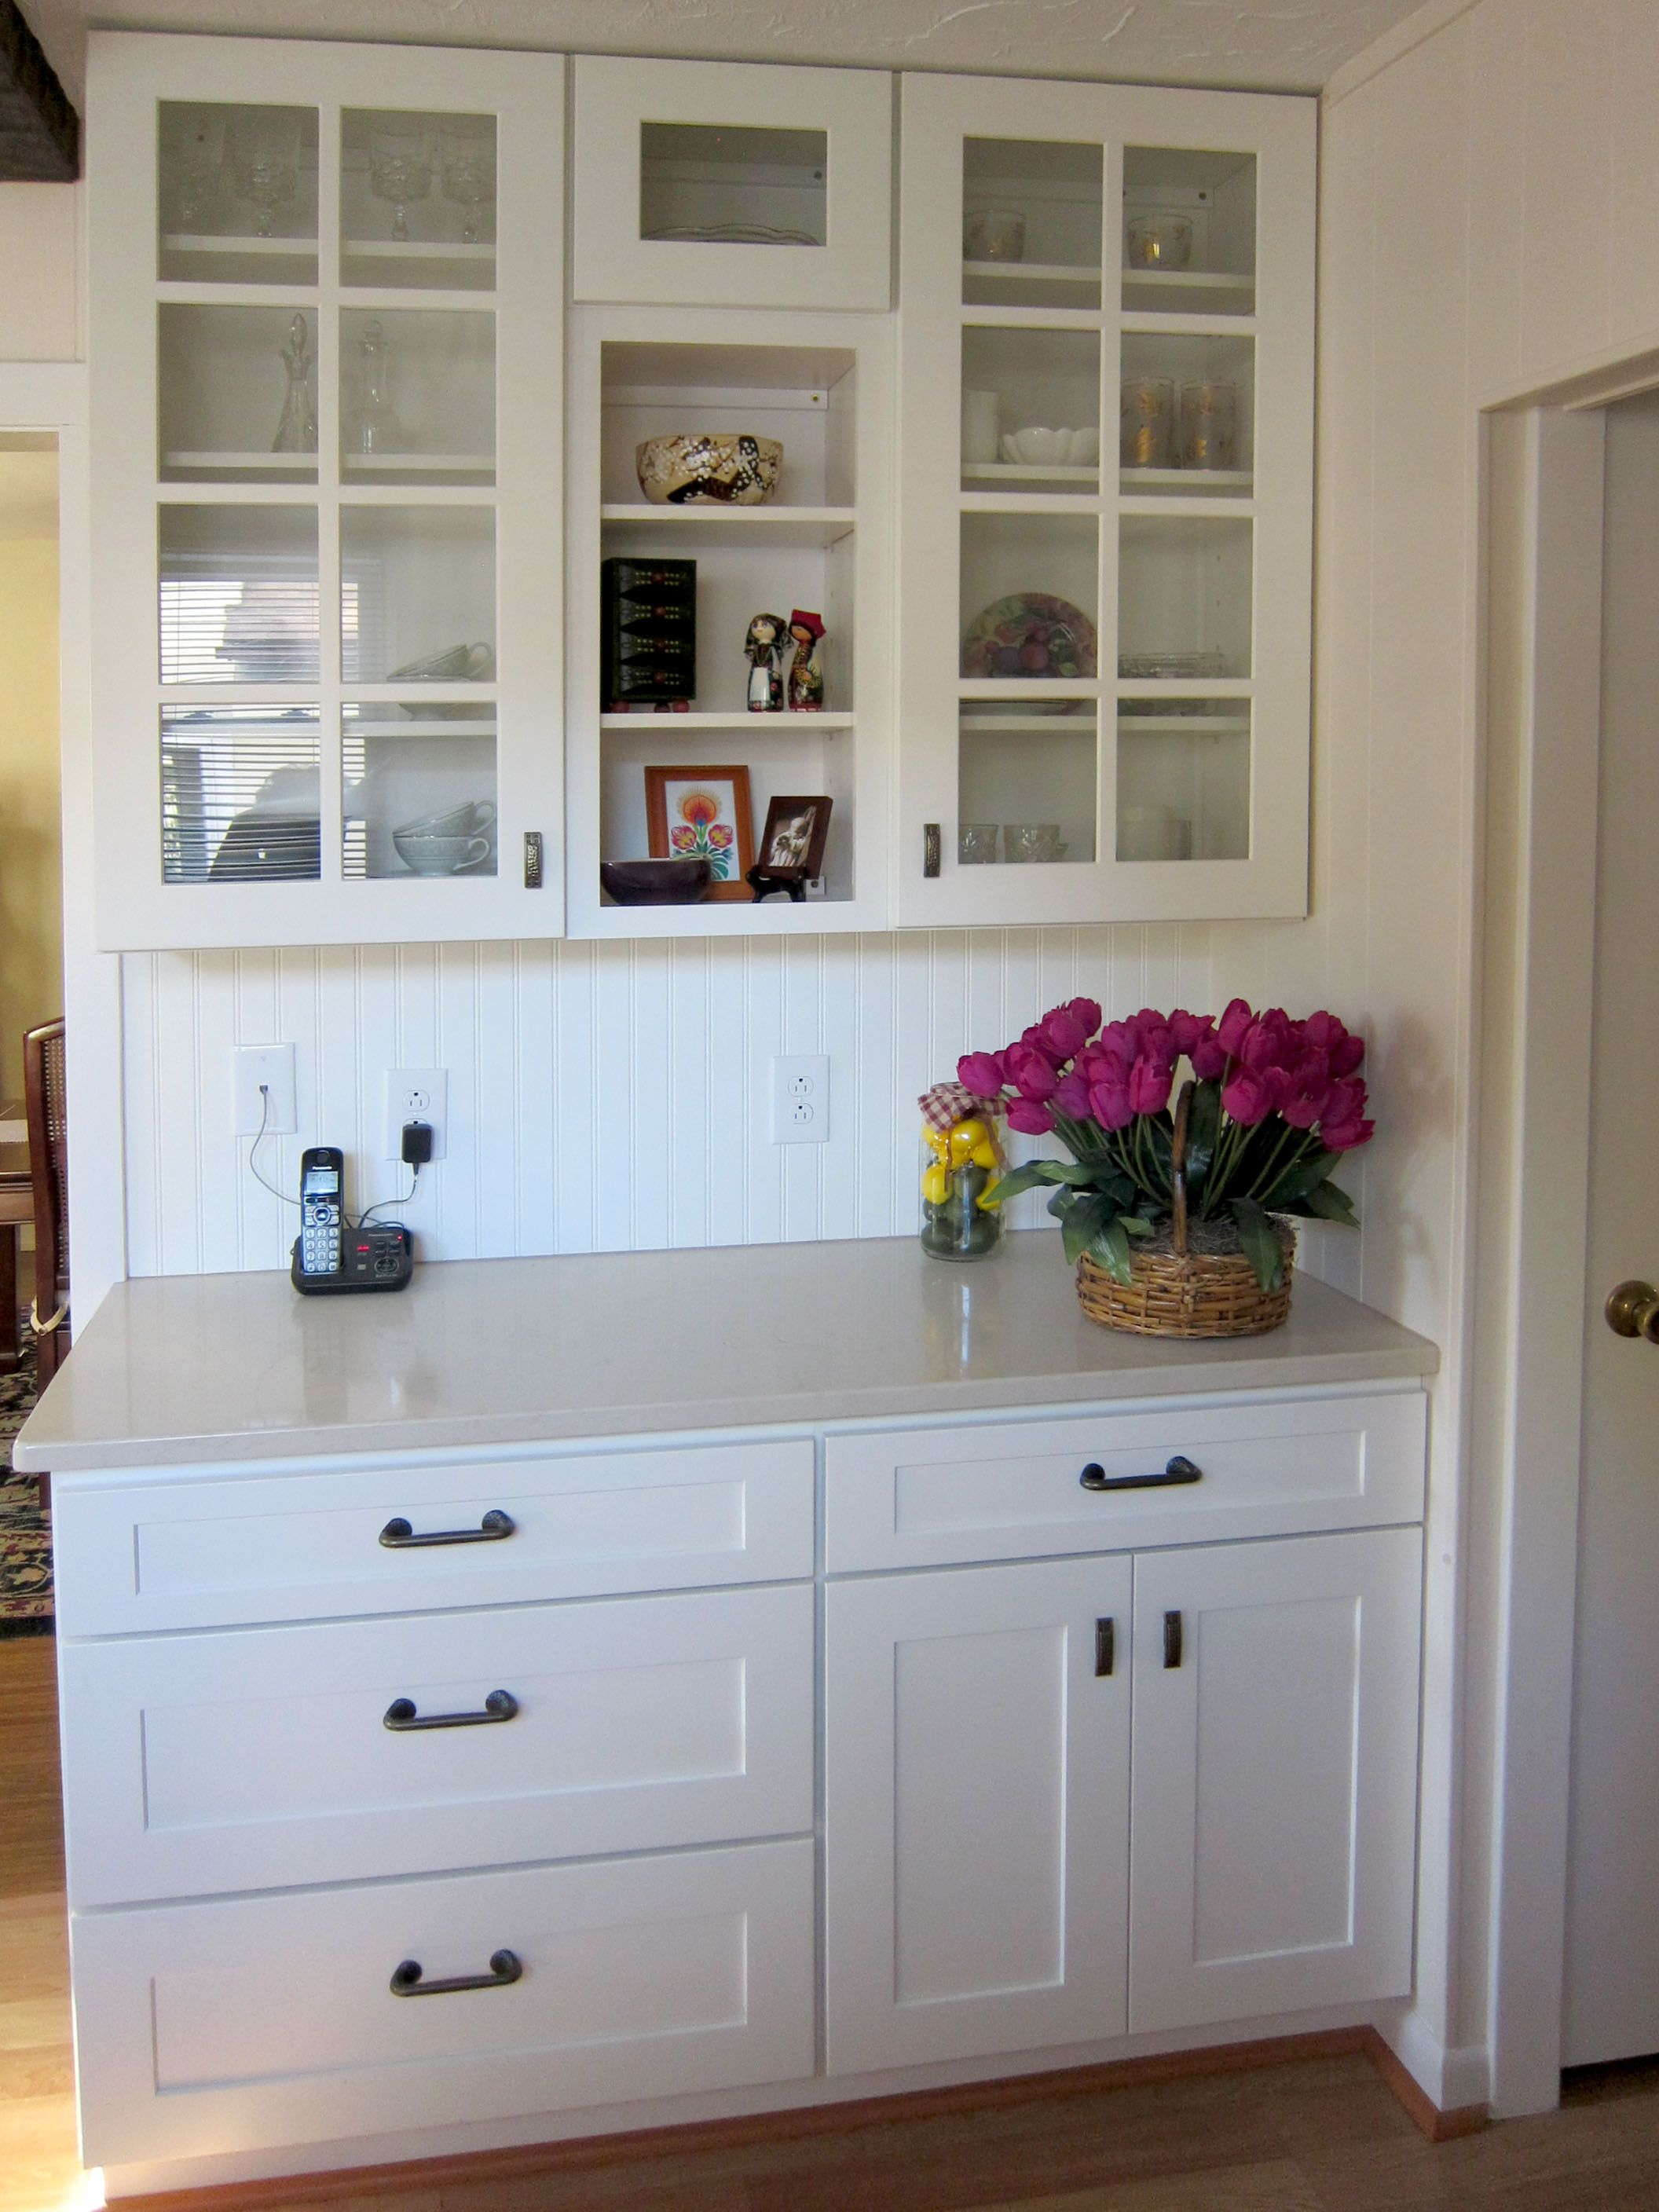 Classic White Kitchen Cabinets And Drawers Kitchen Cabinet Design Classic White Kitchen Kitchen Remodel